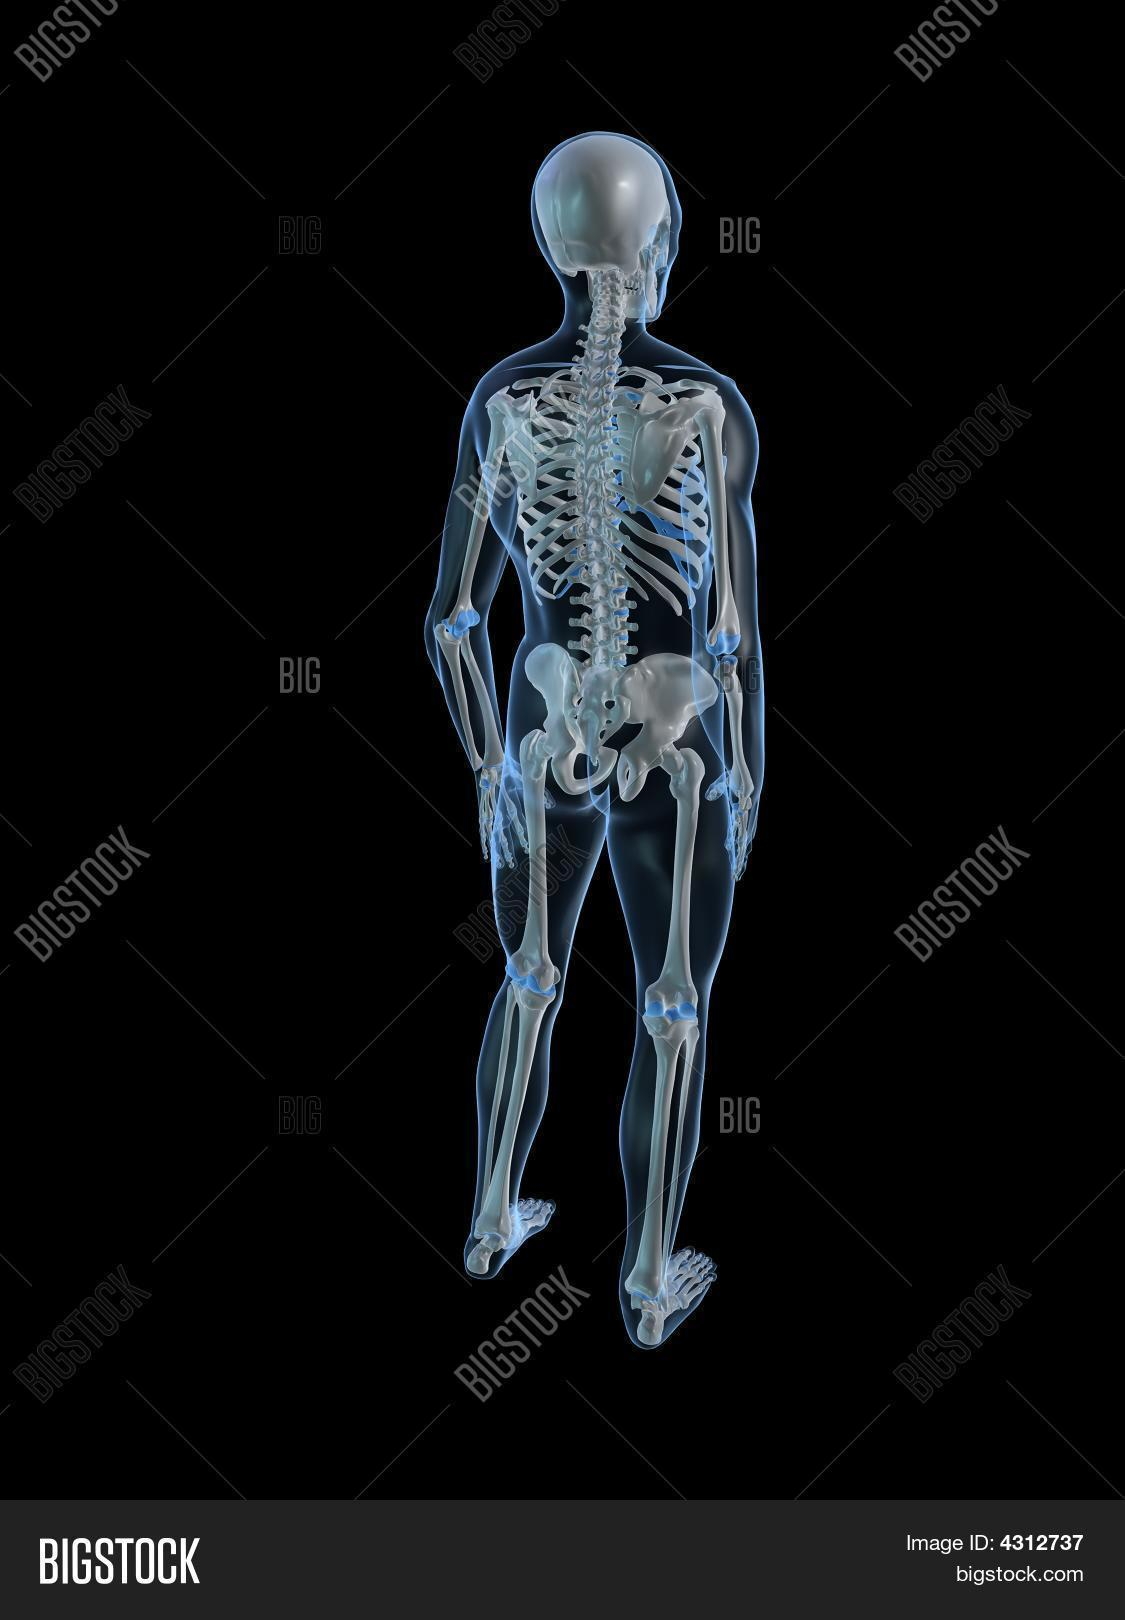 Human Skeleton Back Image Photo Free Trial Bigstock